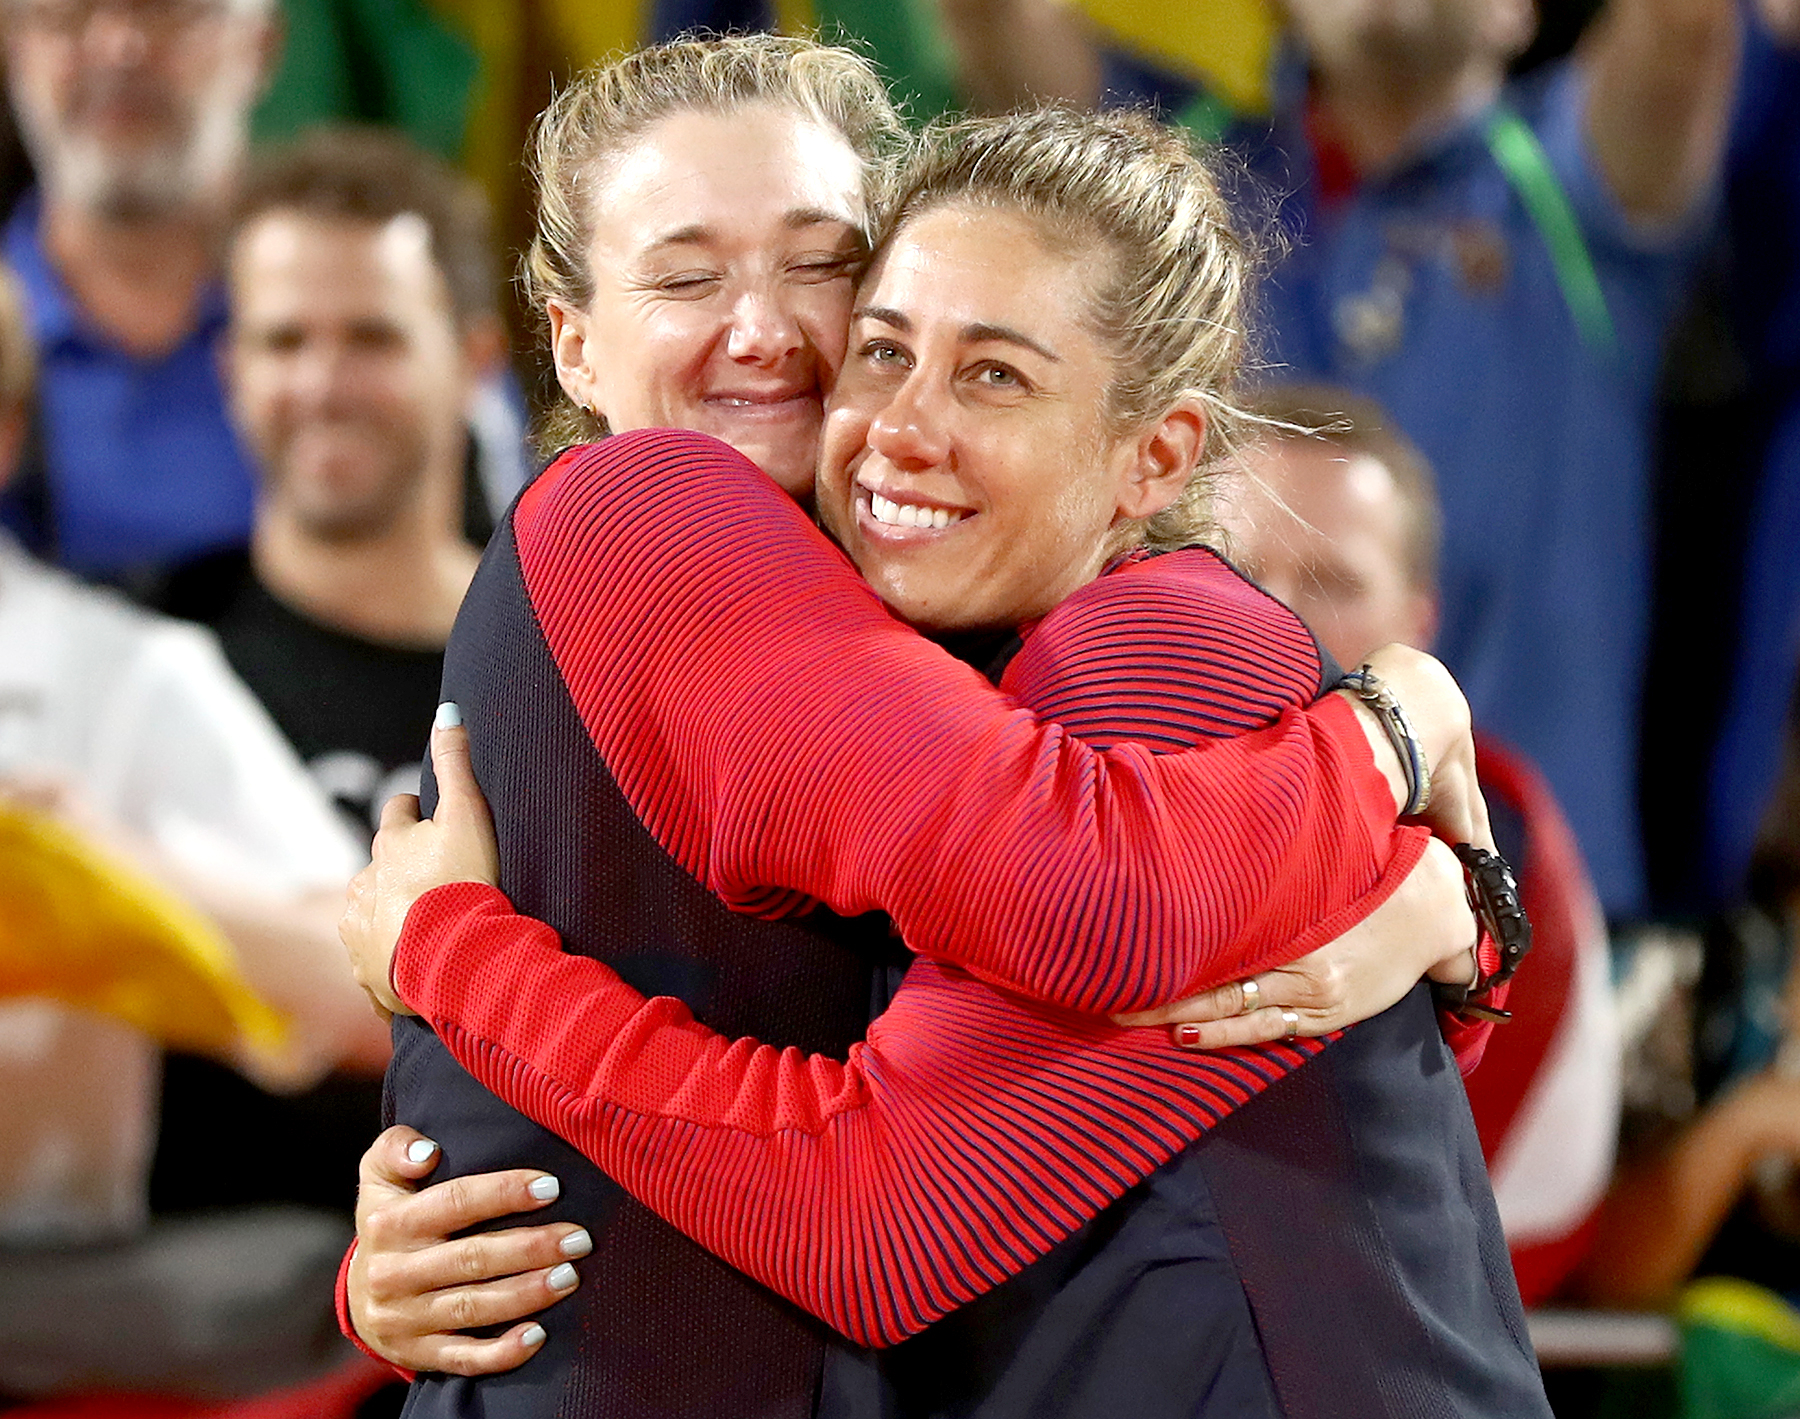 Bronze medalists Kerri Walsh Jennings and April Ross of the United States pose on the podium during the medal ceremony for the Women's Beach Volleyball on day 12 of the Rio 2016 Olympic Games at the Beach Volleyball Arena on August 17, 2016 in Rio de Janeiro, Brazil.